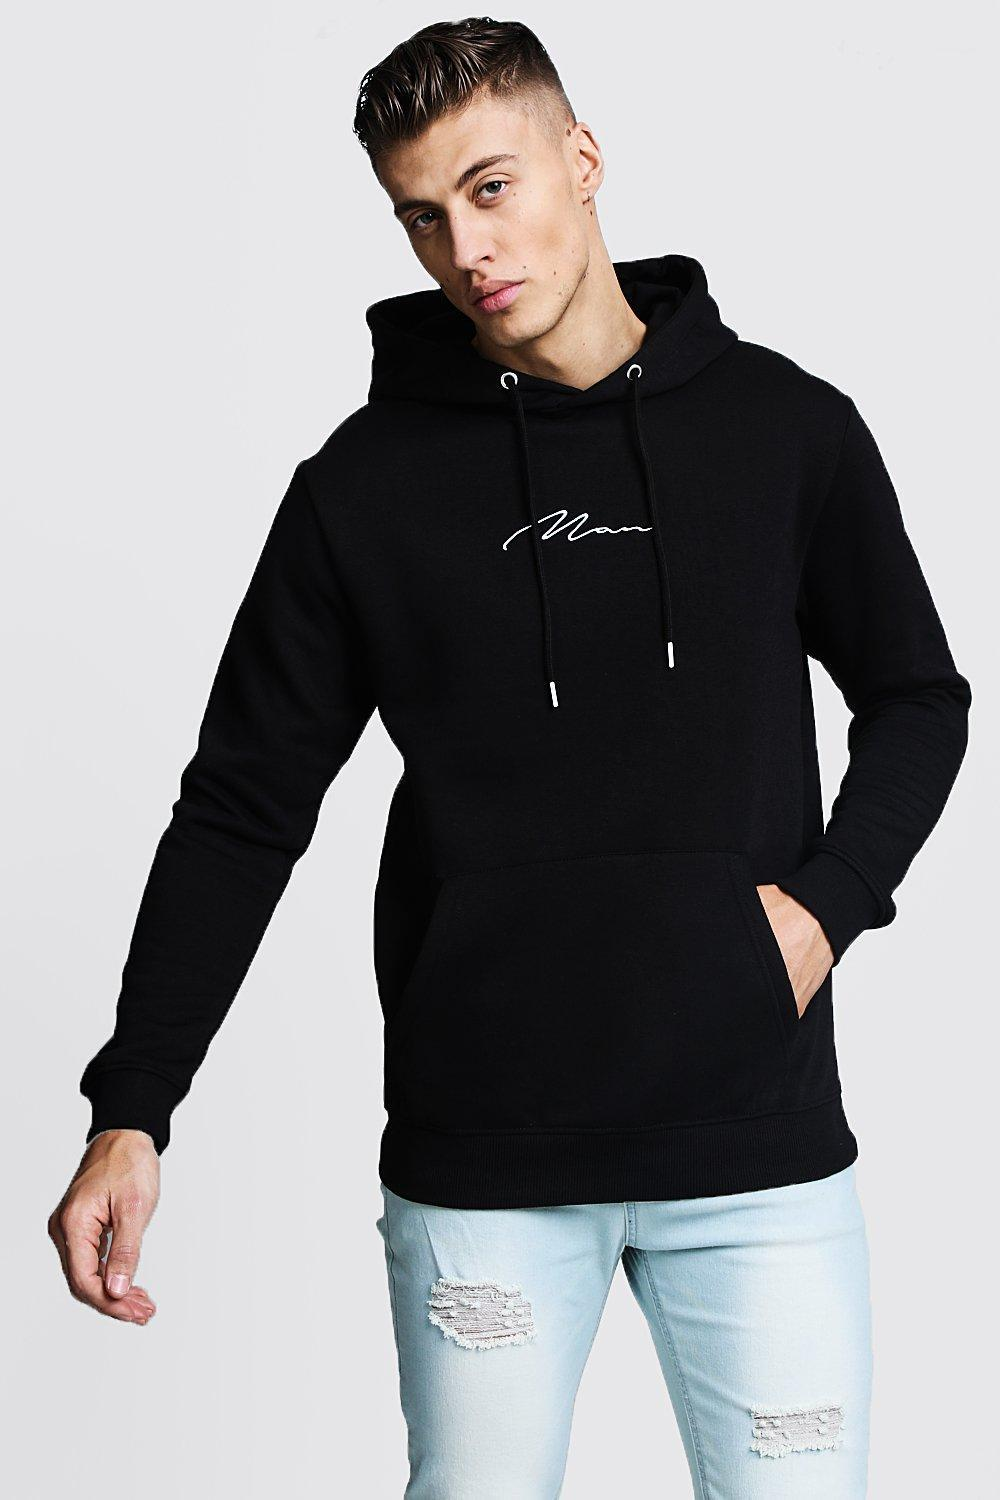 c29c476bf1 Boohoo - Black Man Signature Embroidered Hoodie for Men - Lyst. View  fullscreen